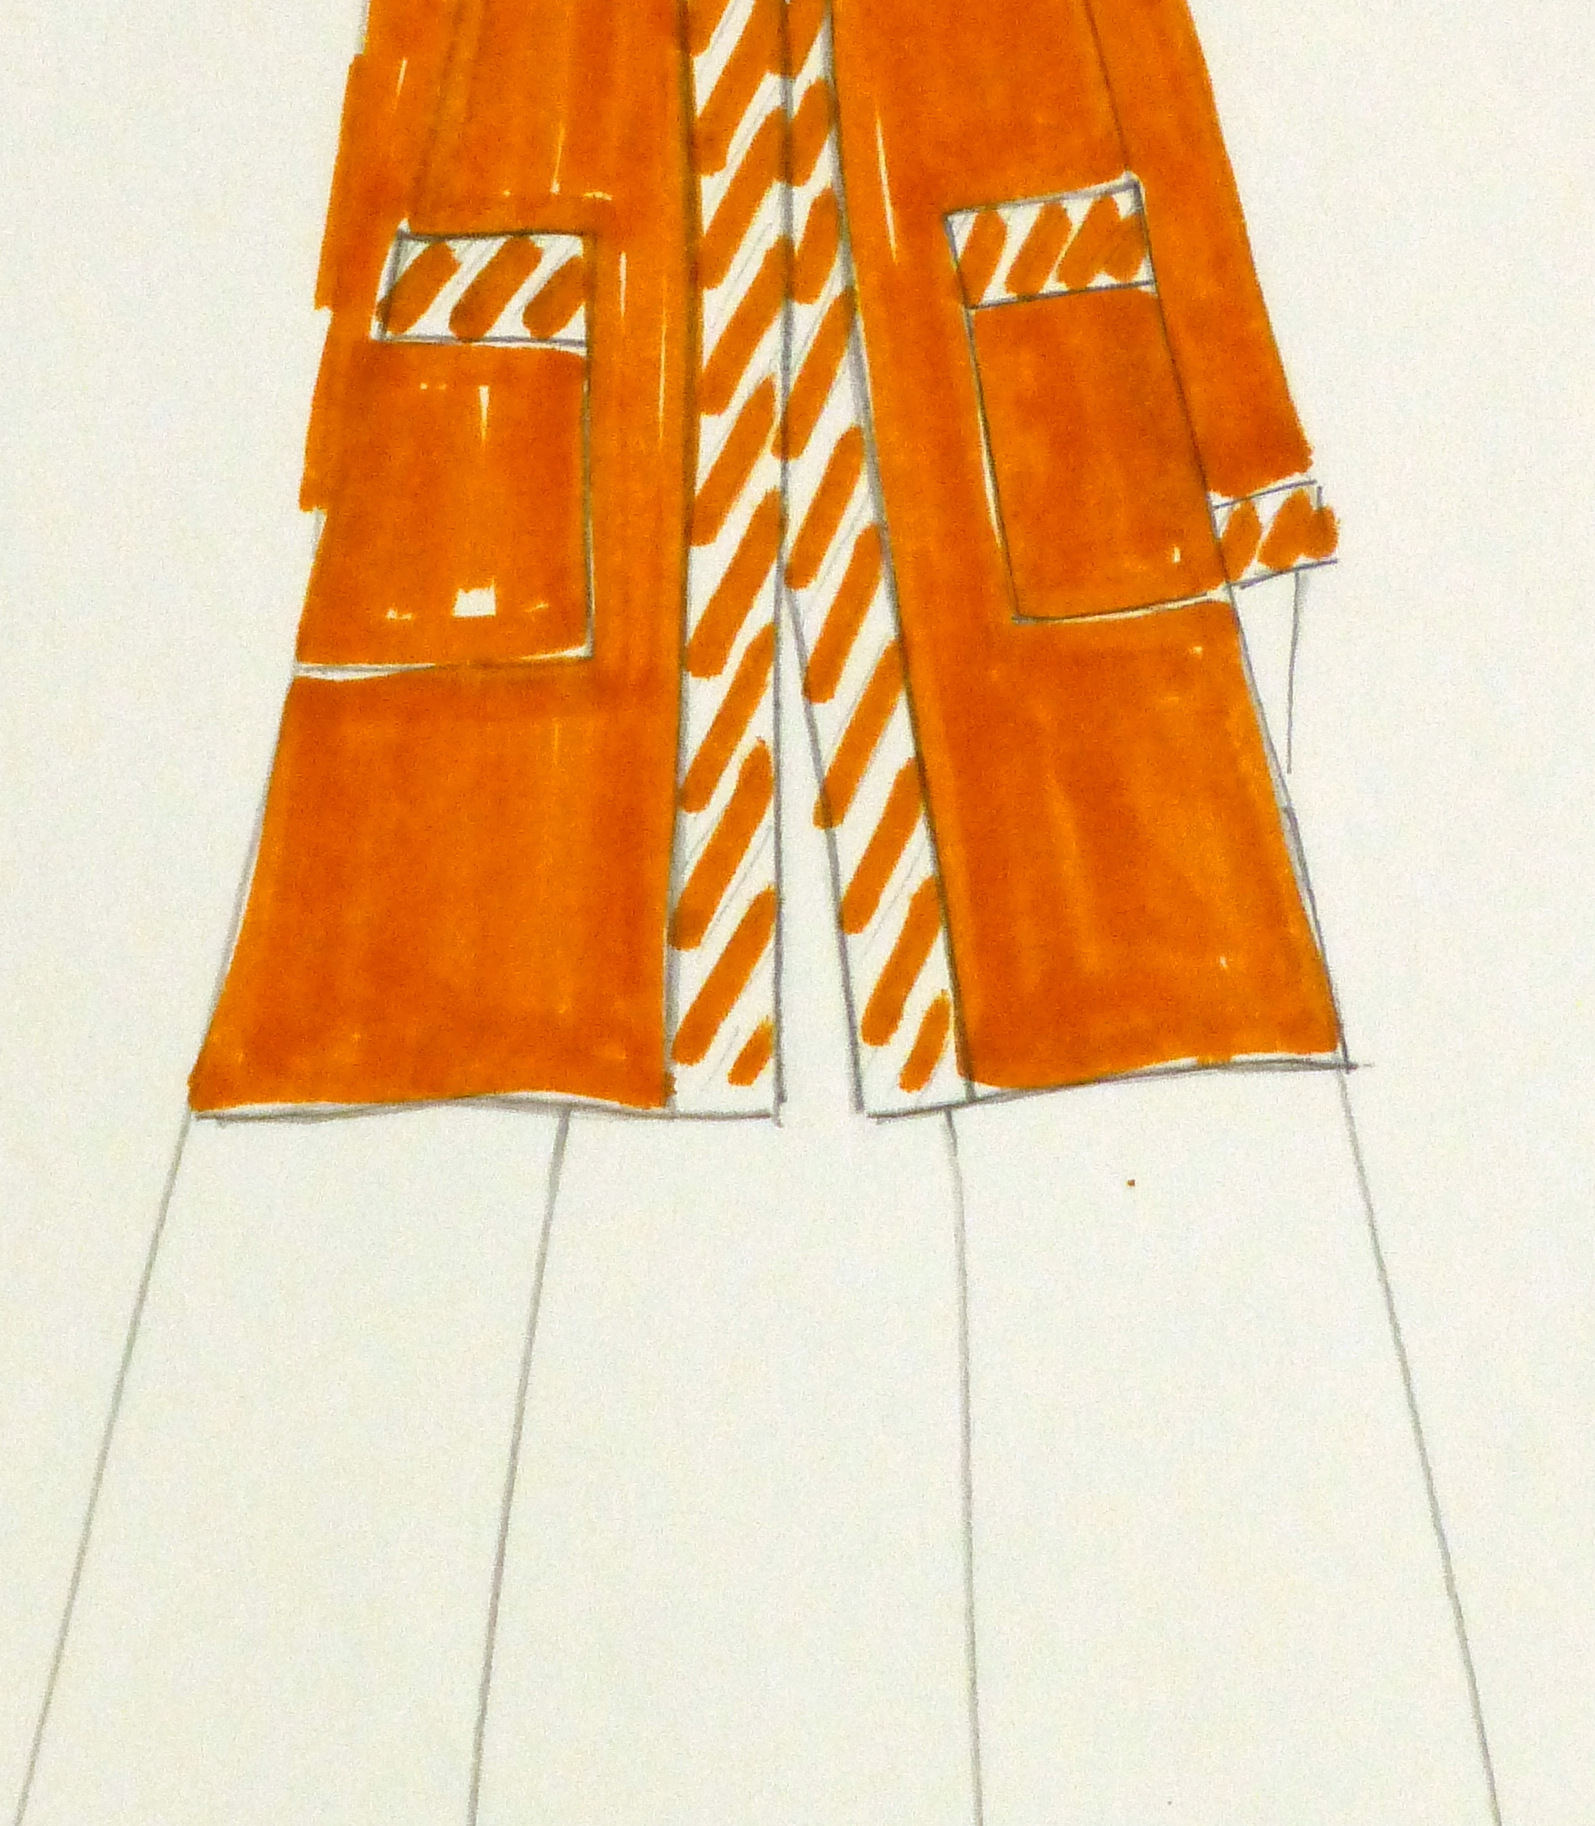 Ink & Pencil Fashion Sketch - Orange Coat - detail-10111M